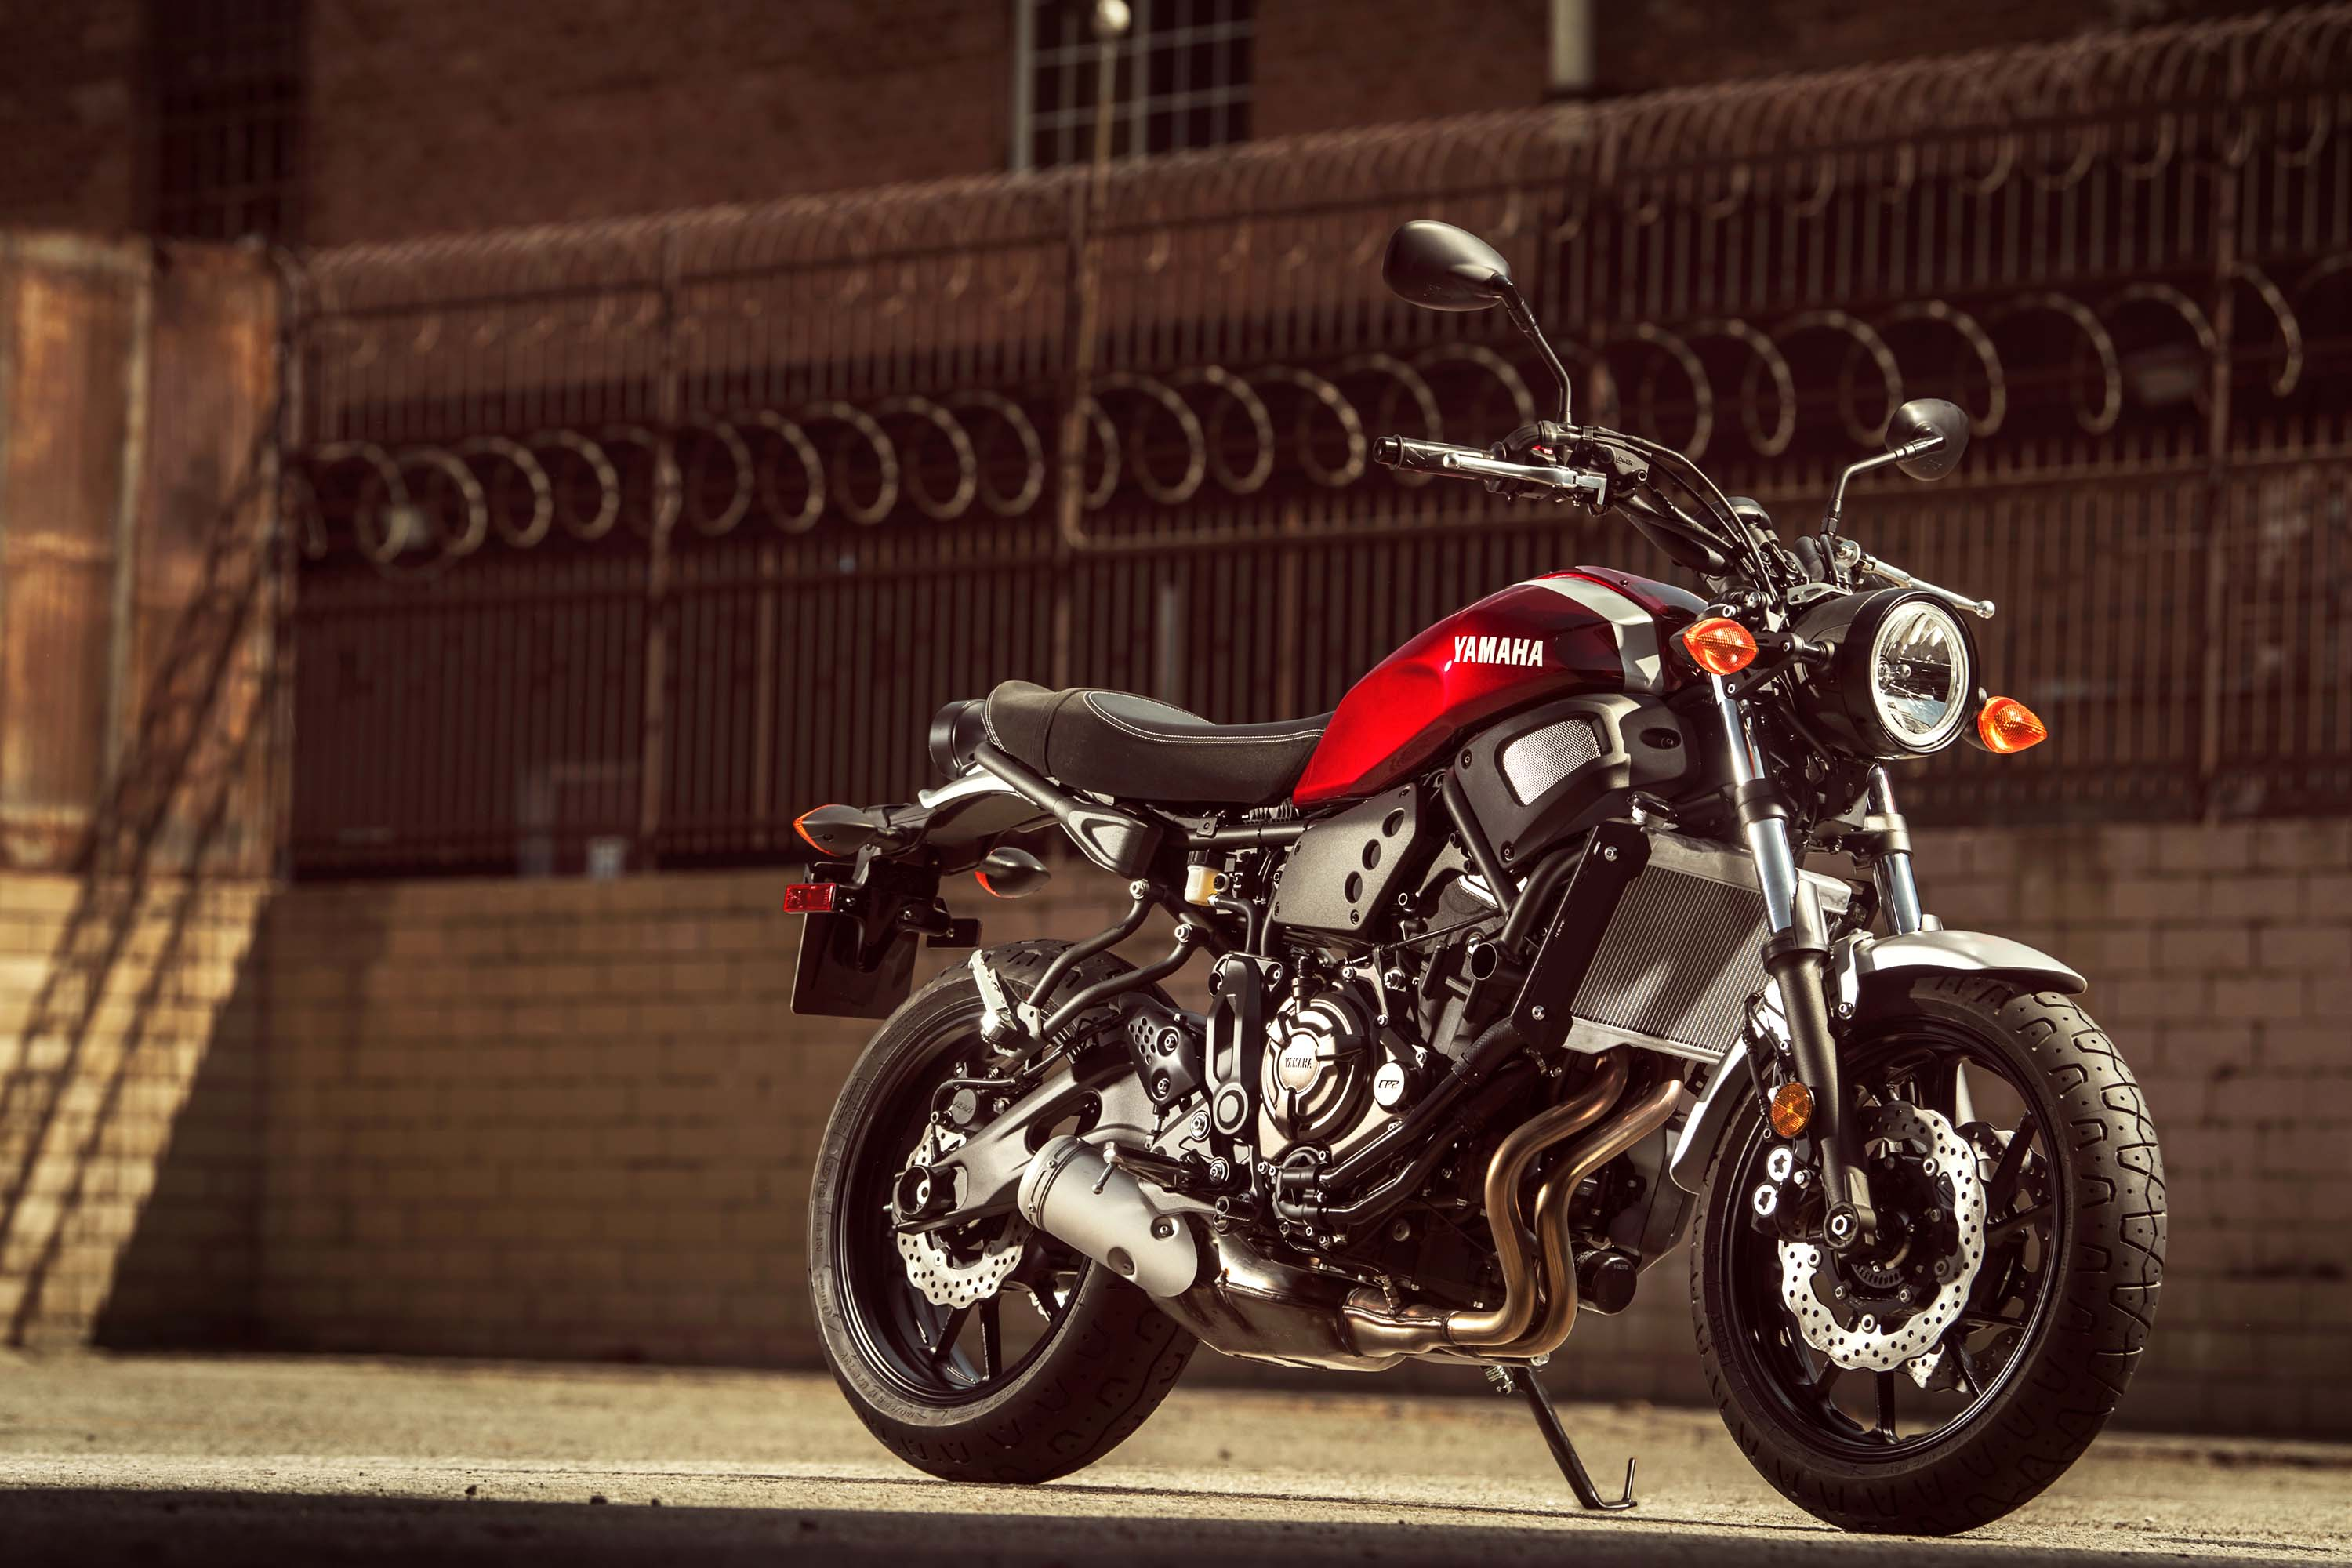 Yamaha xsr700 brings the hip to the usa for 2018 asphalt for Yamaha new motorcycles 2018